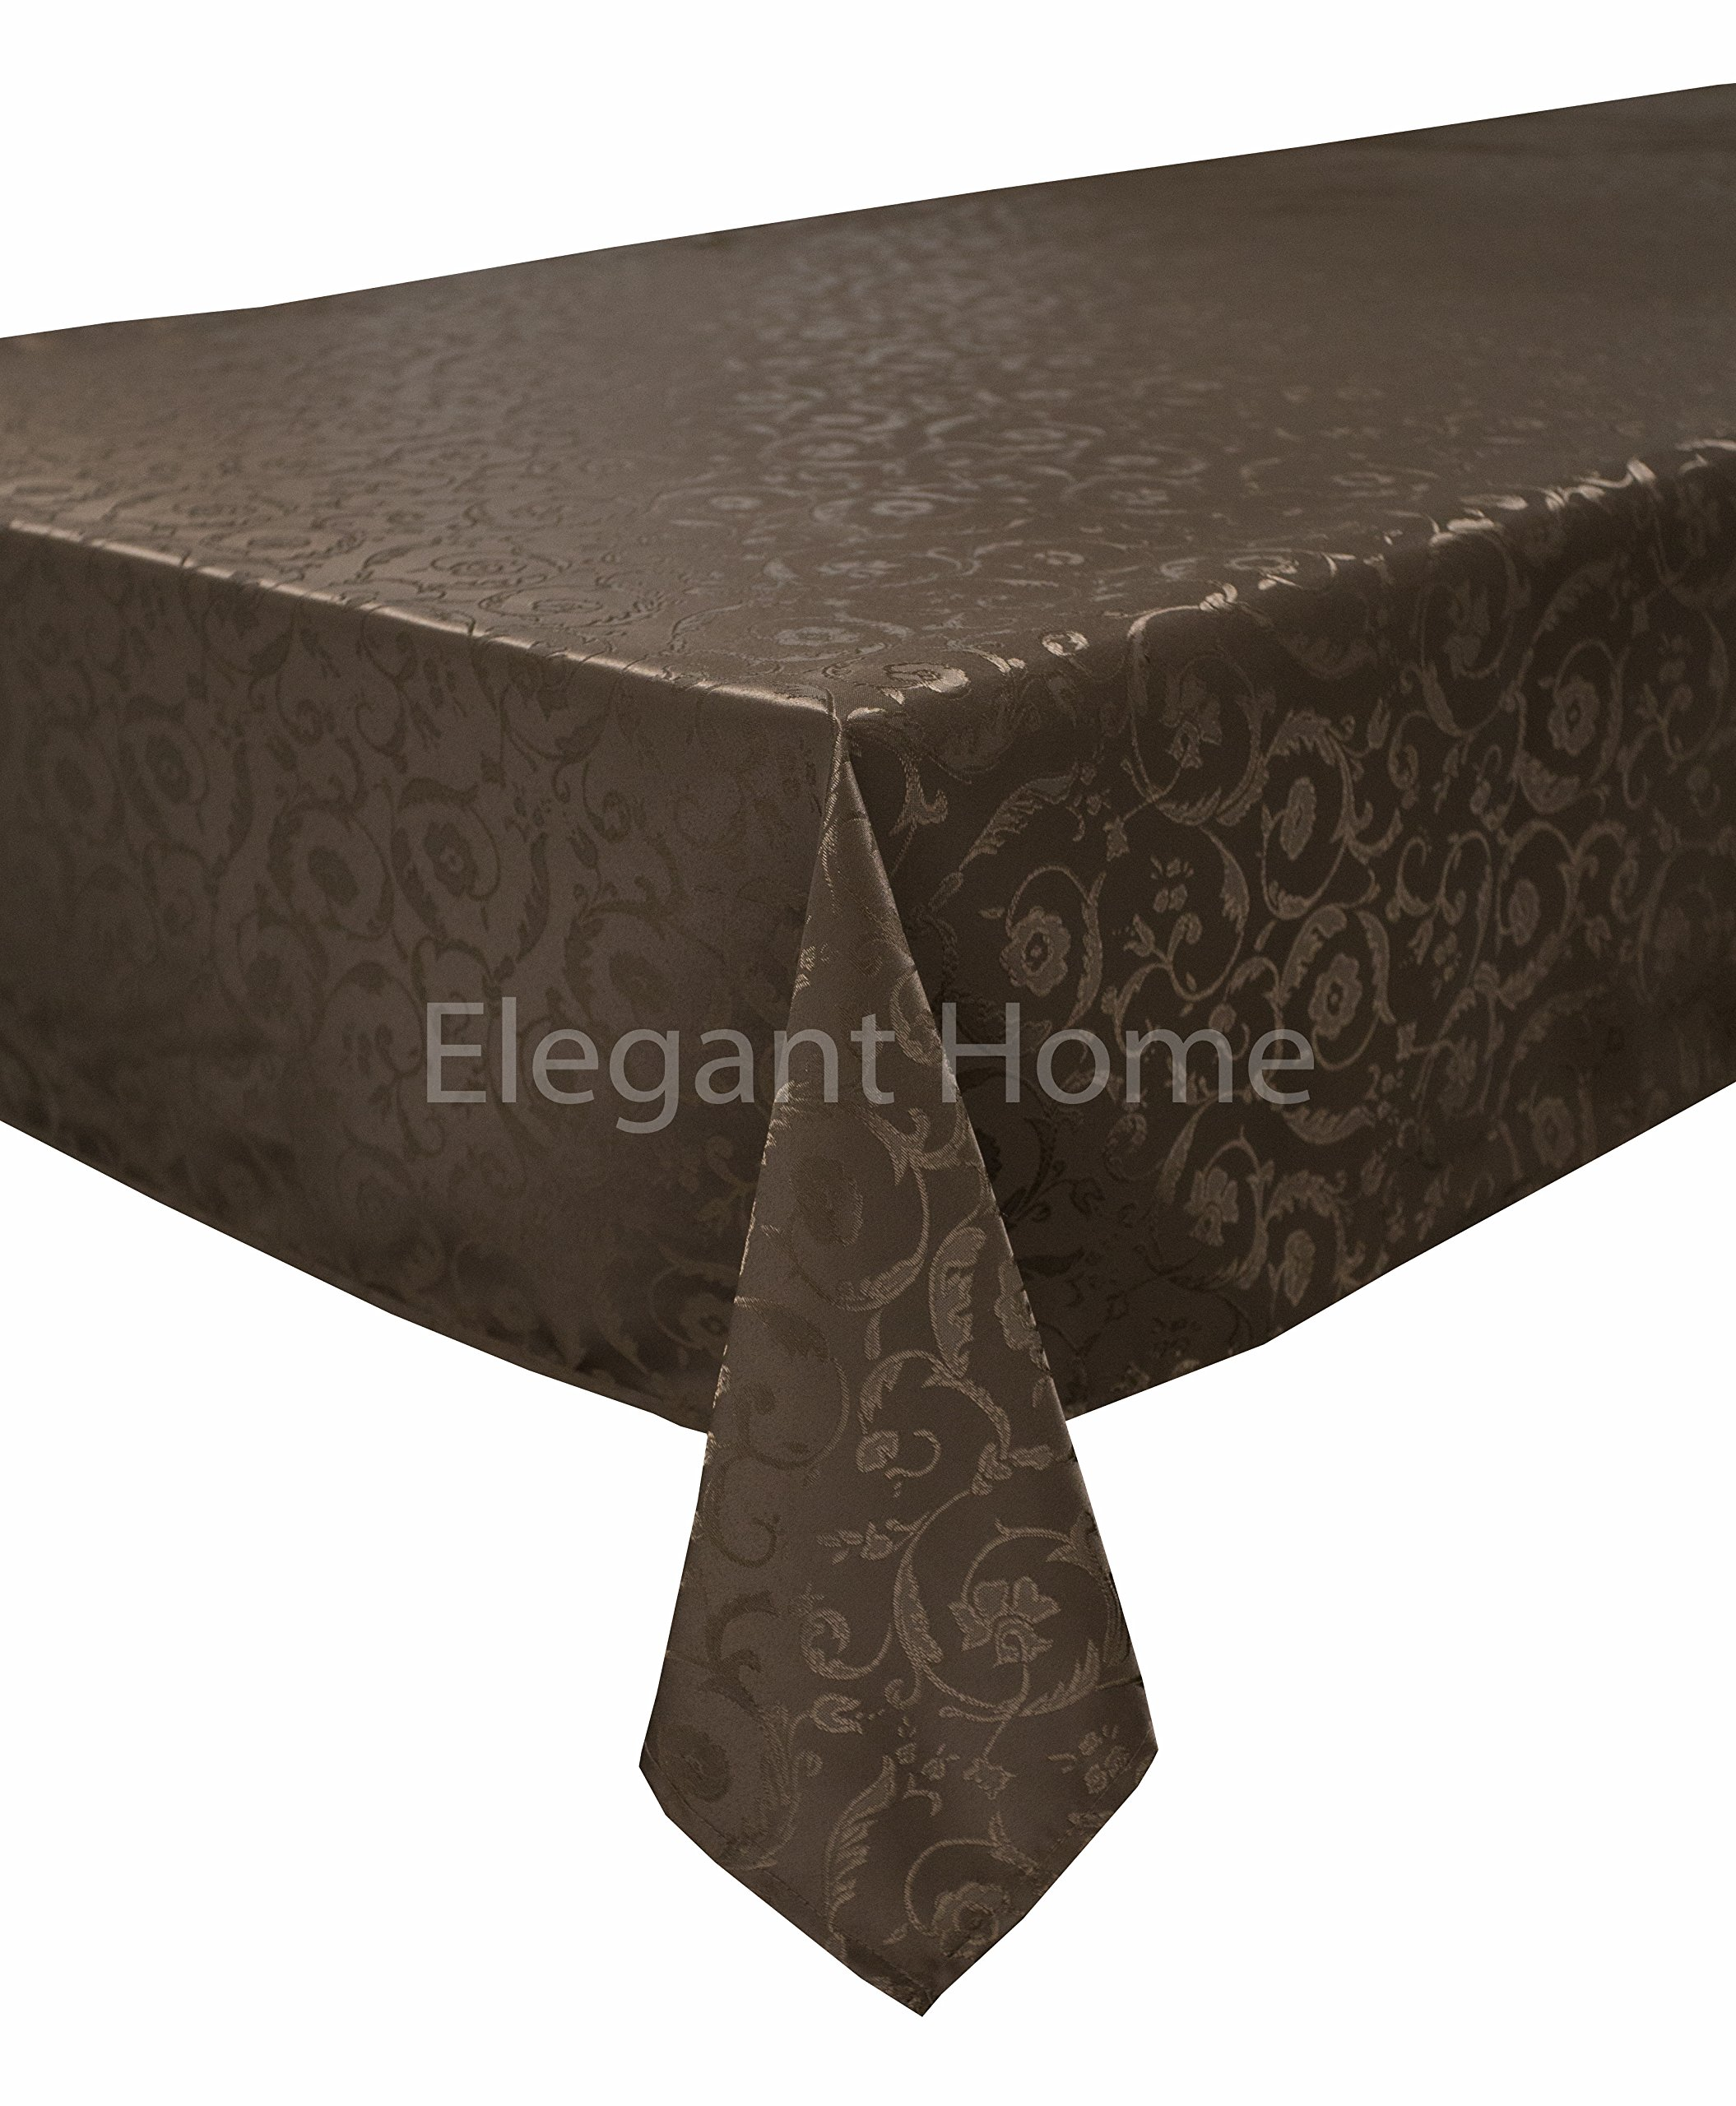 Elegant Home Dark Brown Coffee Chocolate Floral Jacquard Rectangle Tablecloth Heavy Weight Fabric Table Cover for Kitchen Dinning Tabletop Linen Decor (60'' X 104'')